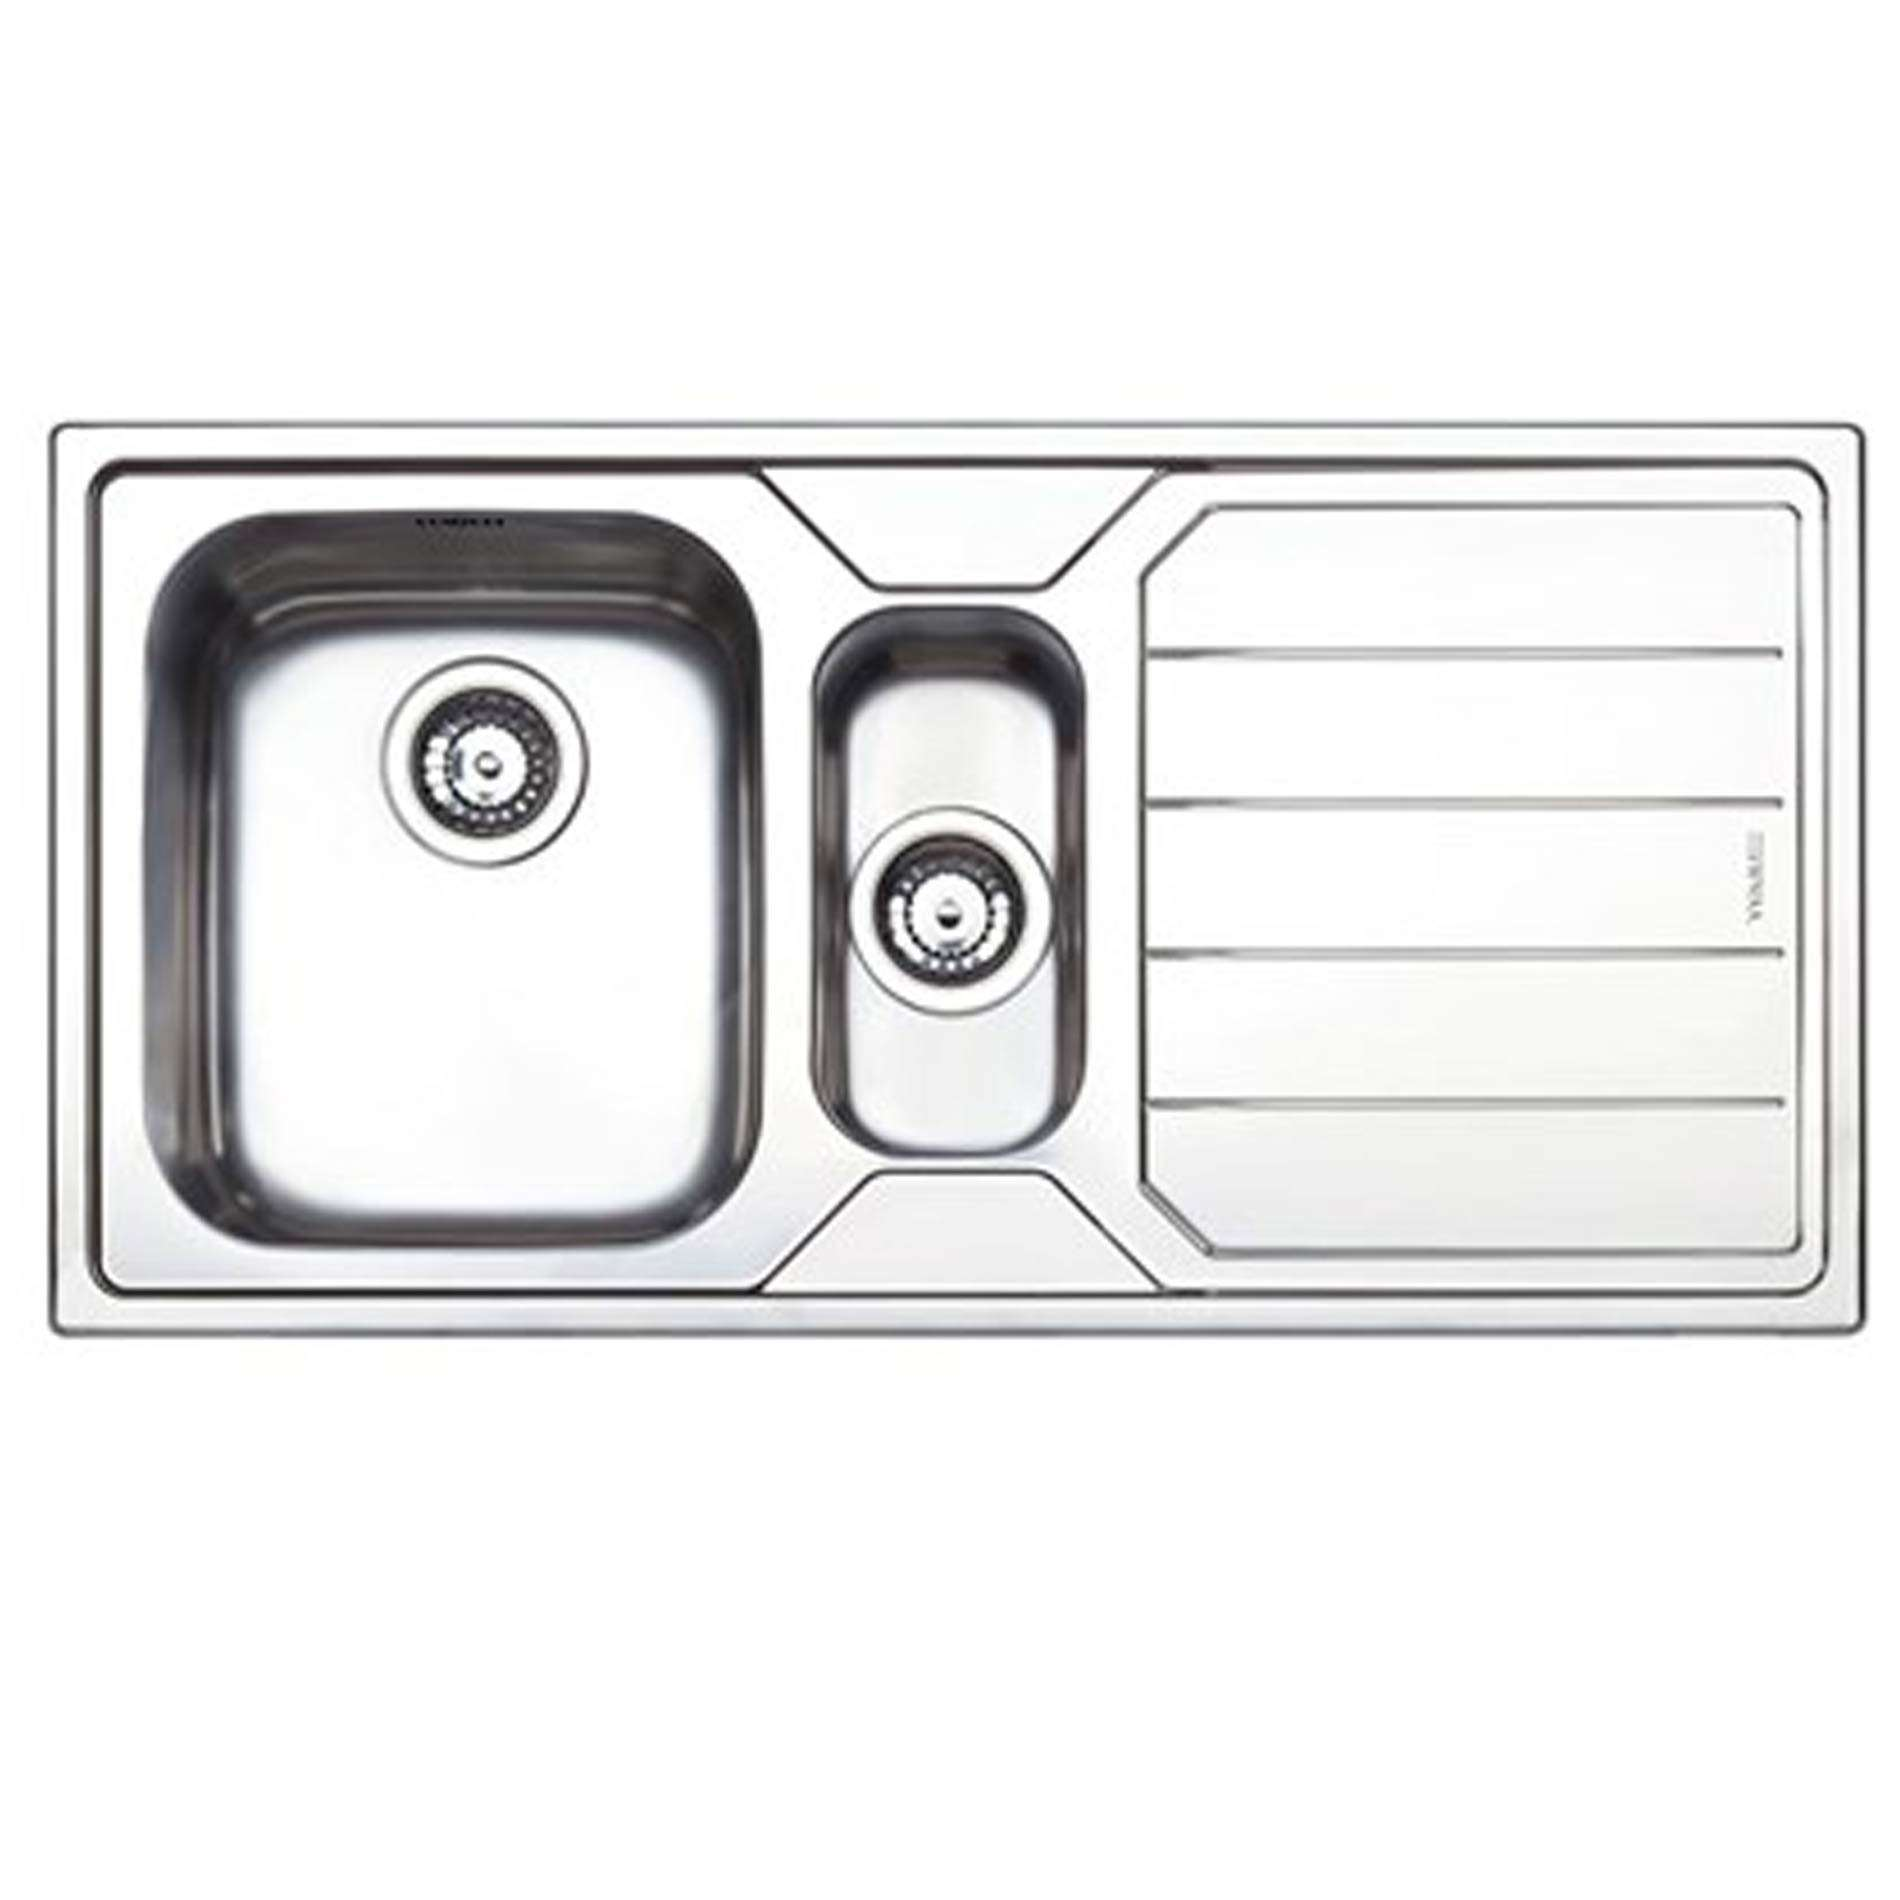 Clearwater Linear 1 5 Bowl Stainless Steel Sink